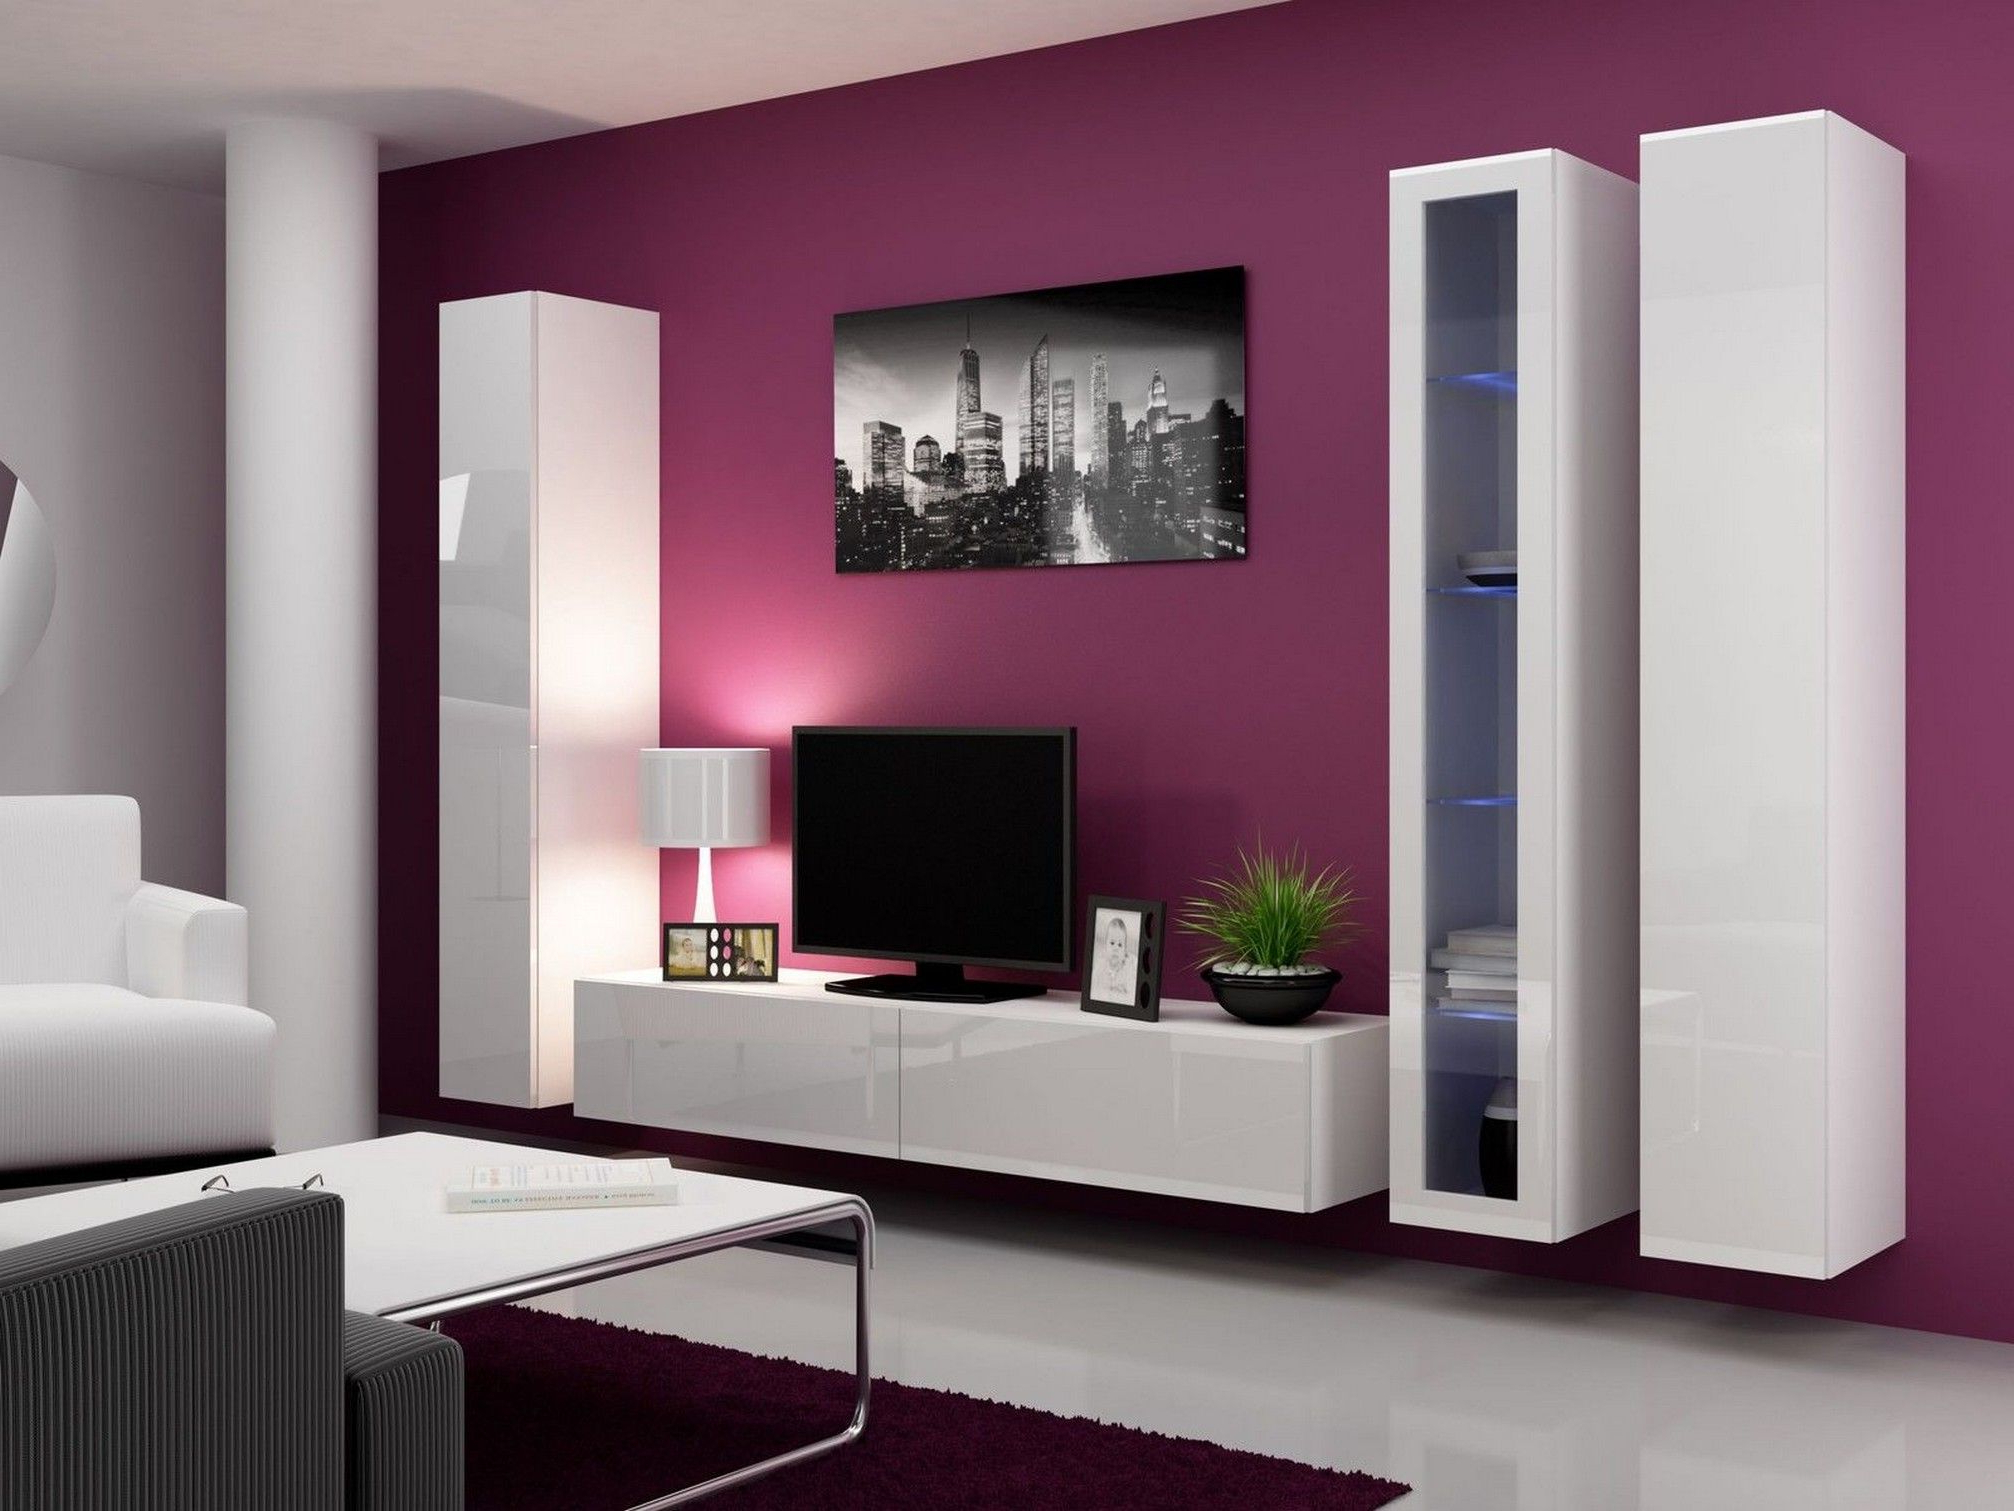 Wall Mounted Tv Unit, Furniture, Pink Color Schemes Ideas For Throughout 2018 Modern Wall Mount Tv Stands (View 17 of 20)